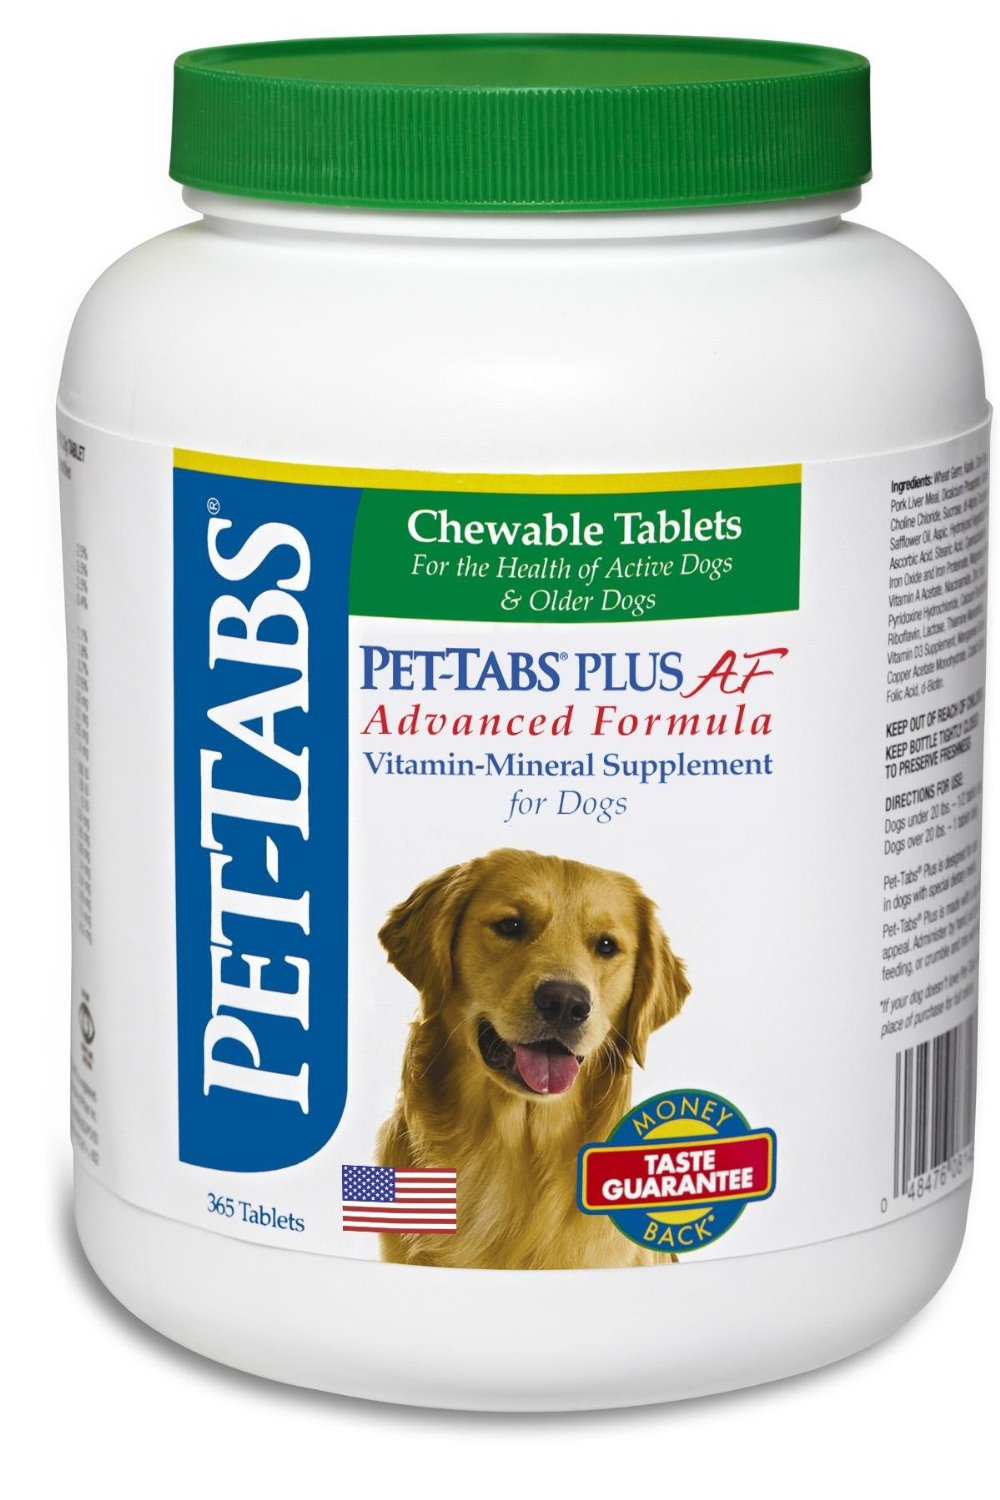 Pet-Tabs Plus Advanced Formula